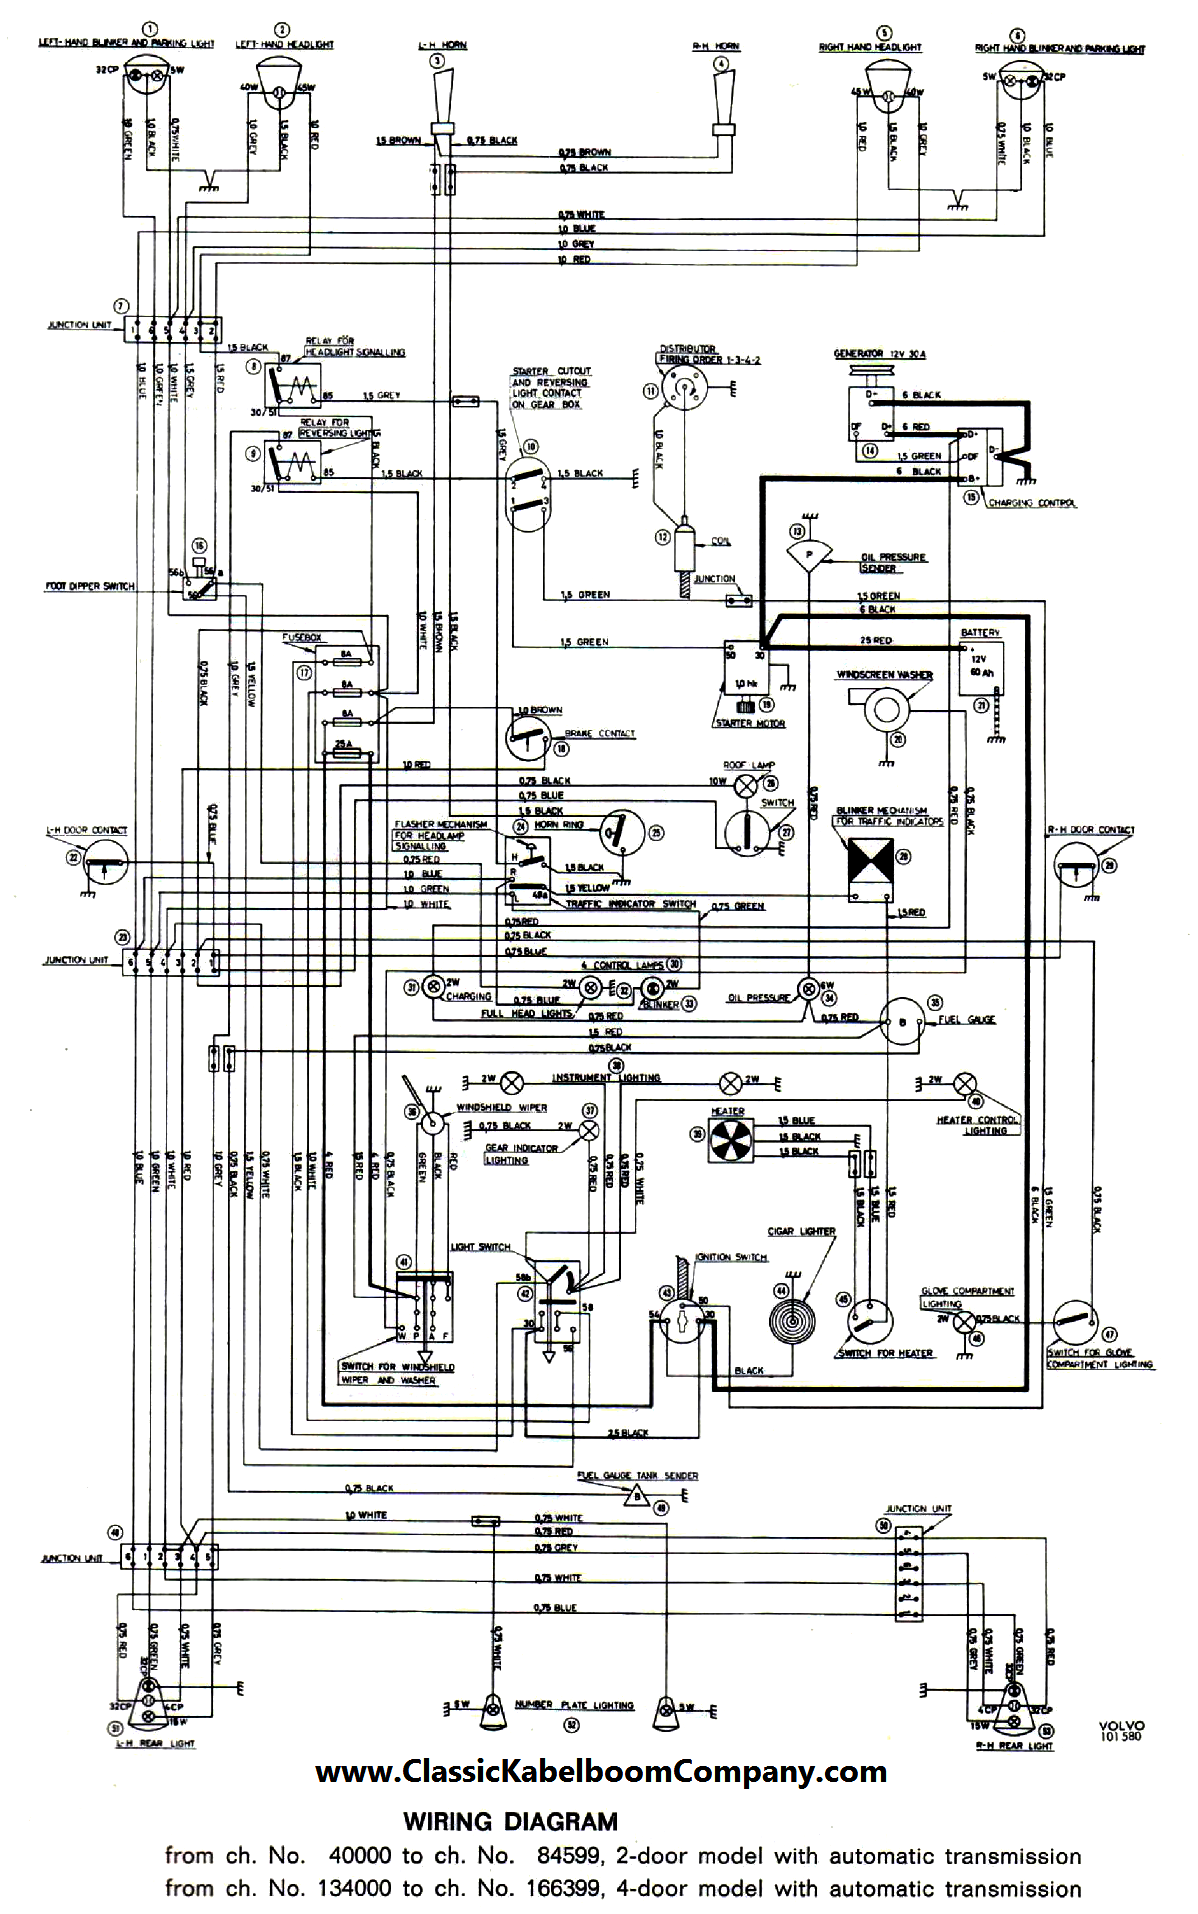 1988 volvo 740 radio wiring diagram with Volvo Wiring Diagrams on Volvo Wiring Diagrams also 1990 Volvo 740 Wiring Diagram moreover 1990 Volvo 740 Wiring Diagram in addition ElectricalCircuitsRelays in addition Electric Heat Pump Wiring Diagram.